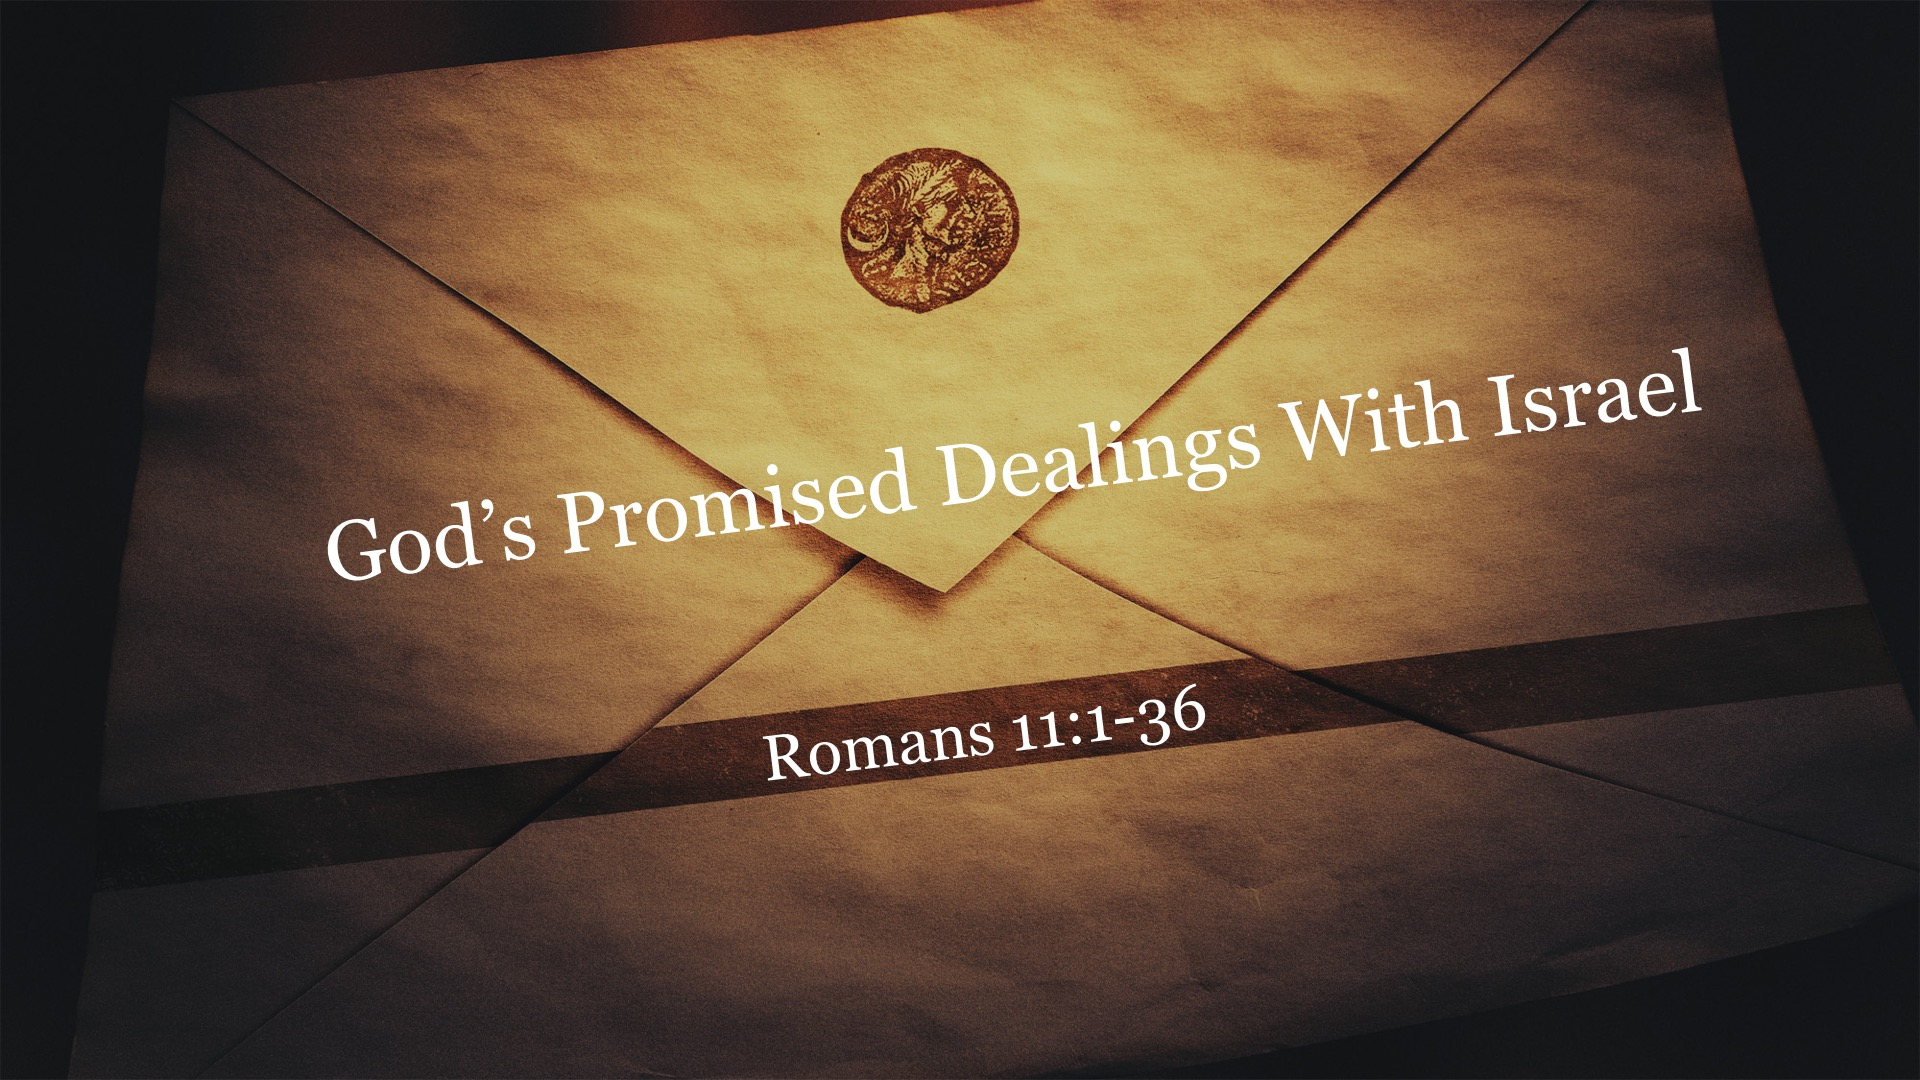 God's Promised Dealings with Israel